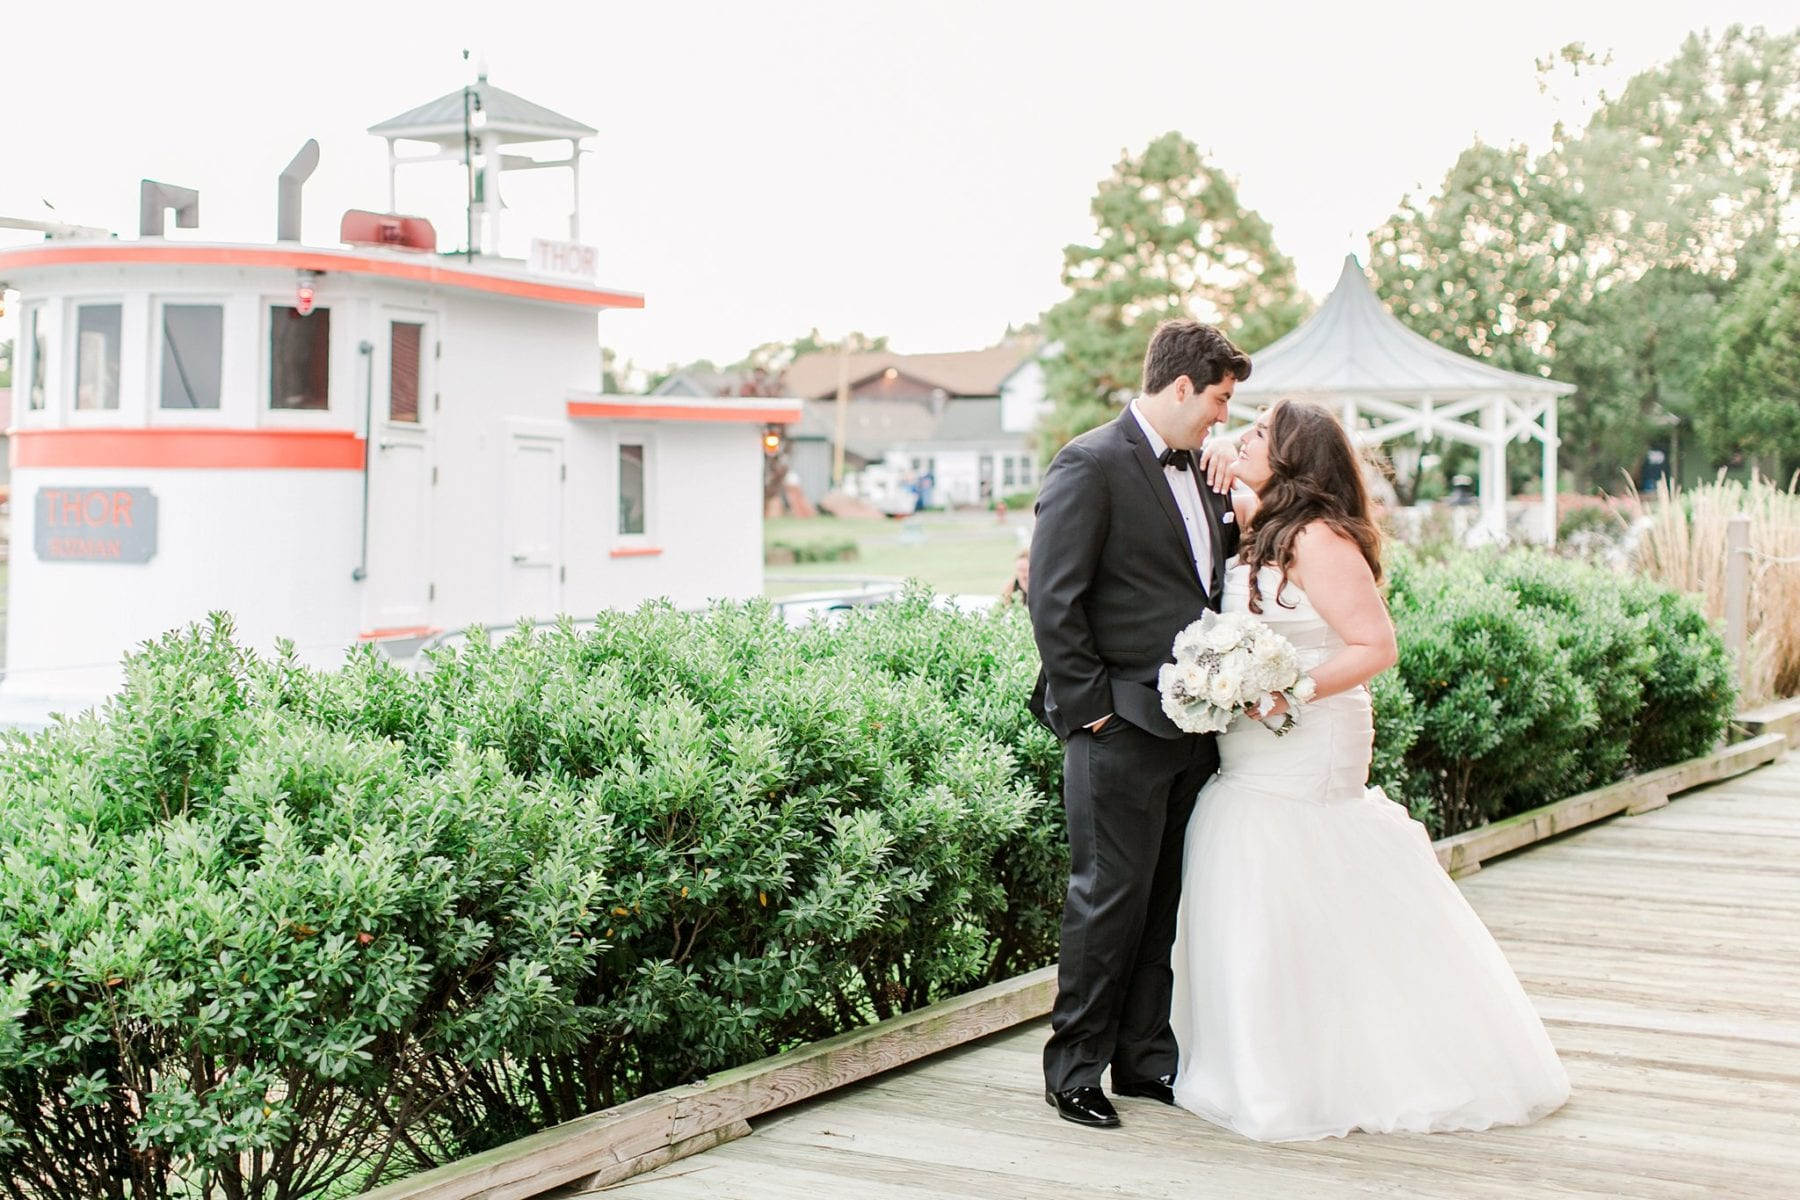 Chesapeake Bay Maritime Museum Wedding Photos Maryland Wedding Photographer Megan Kelsey Photography Halie & Mike-192.jpg